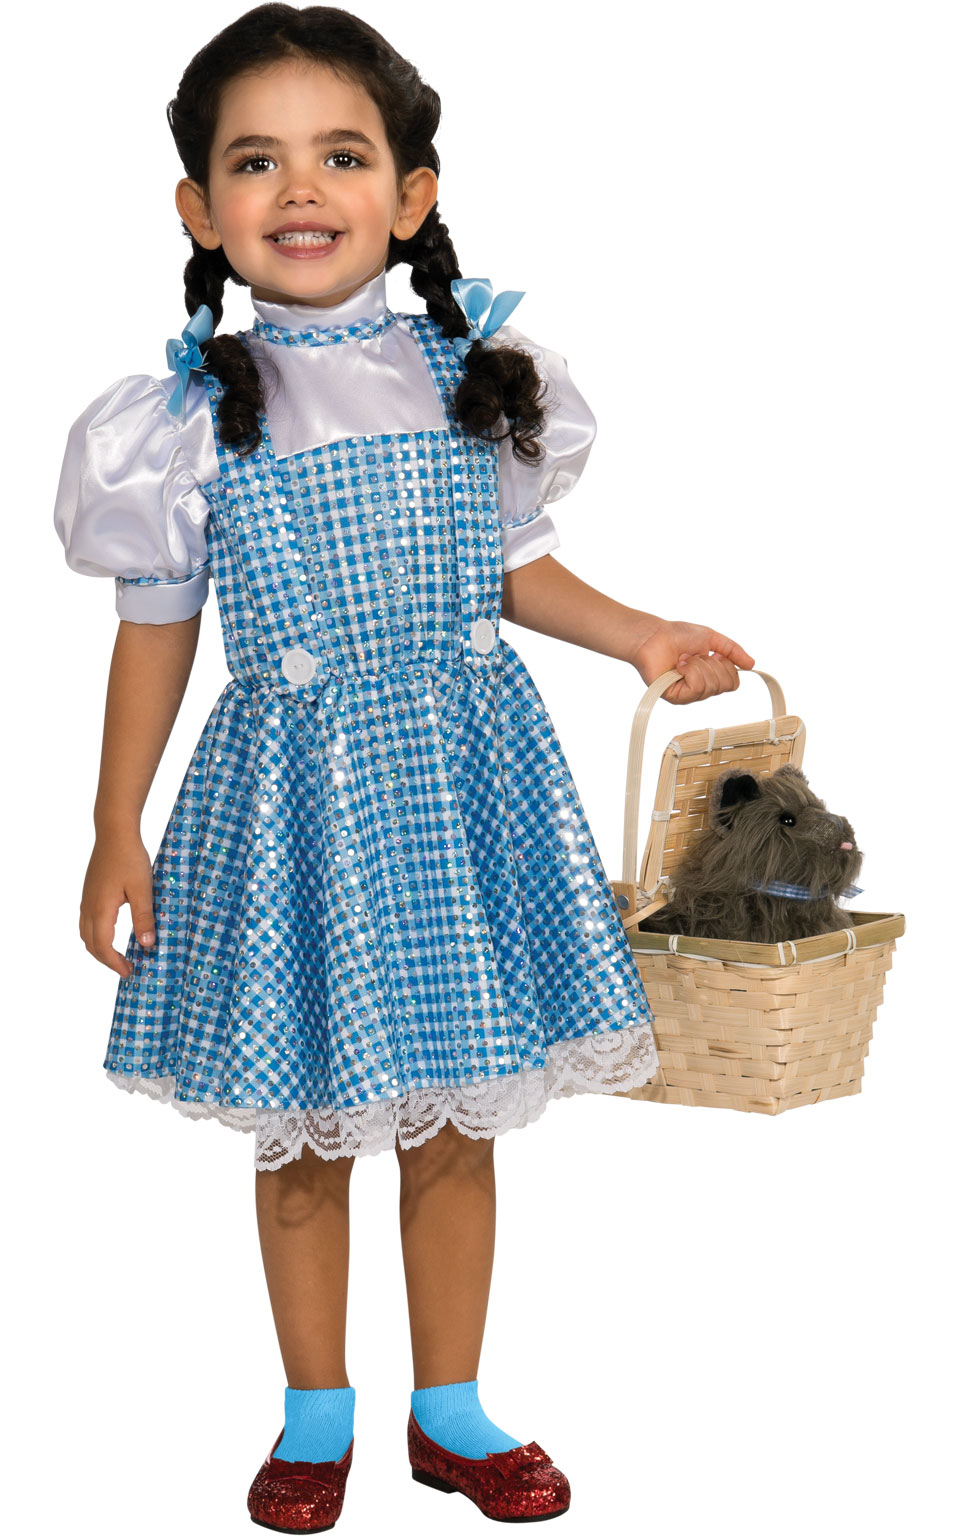 Wizard of Oz Sequin Dorothy Costume Fancy Dress Costumes u0026 Party Supplies Ireland - LittleStarParties Online Party Shop  sc 1 st  Little Star Parties & Wizard of Oz Sequin Dorothy Costume Fancy Dress Costumes u0026 Party ...